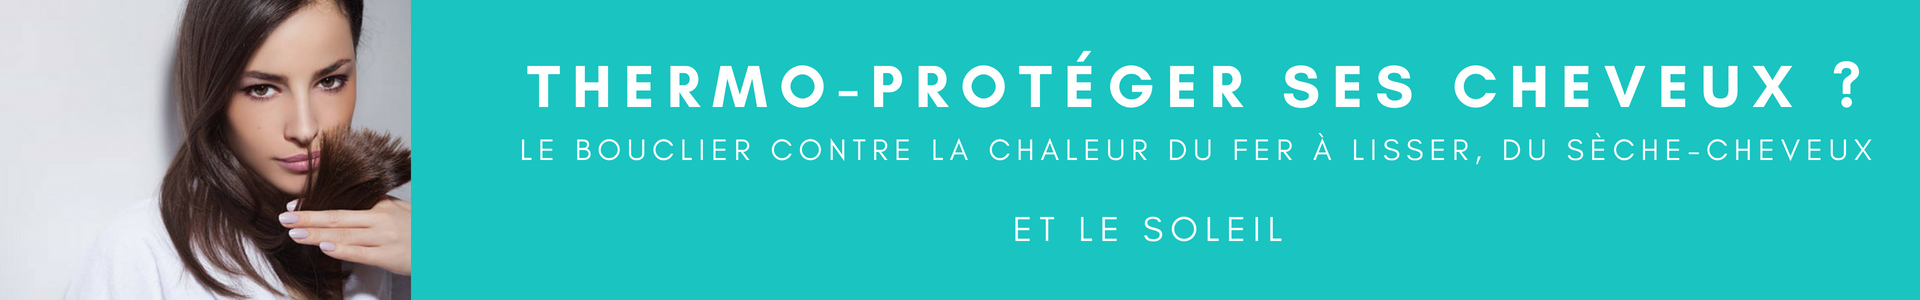 Thermo-protéger ses cheveux